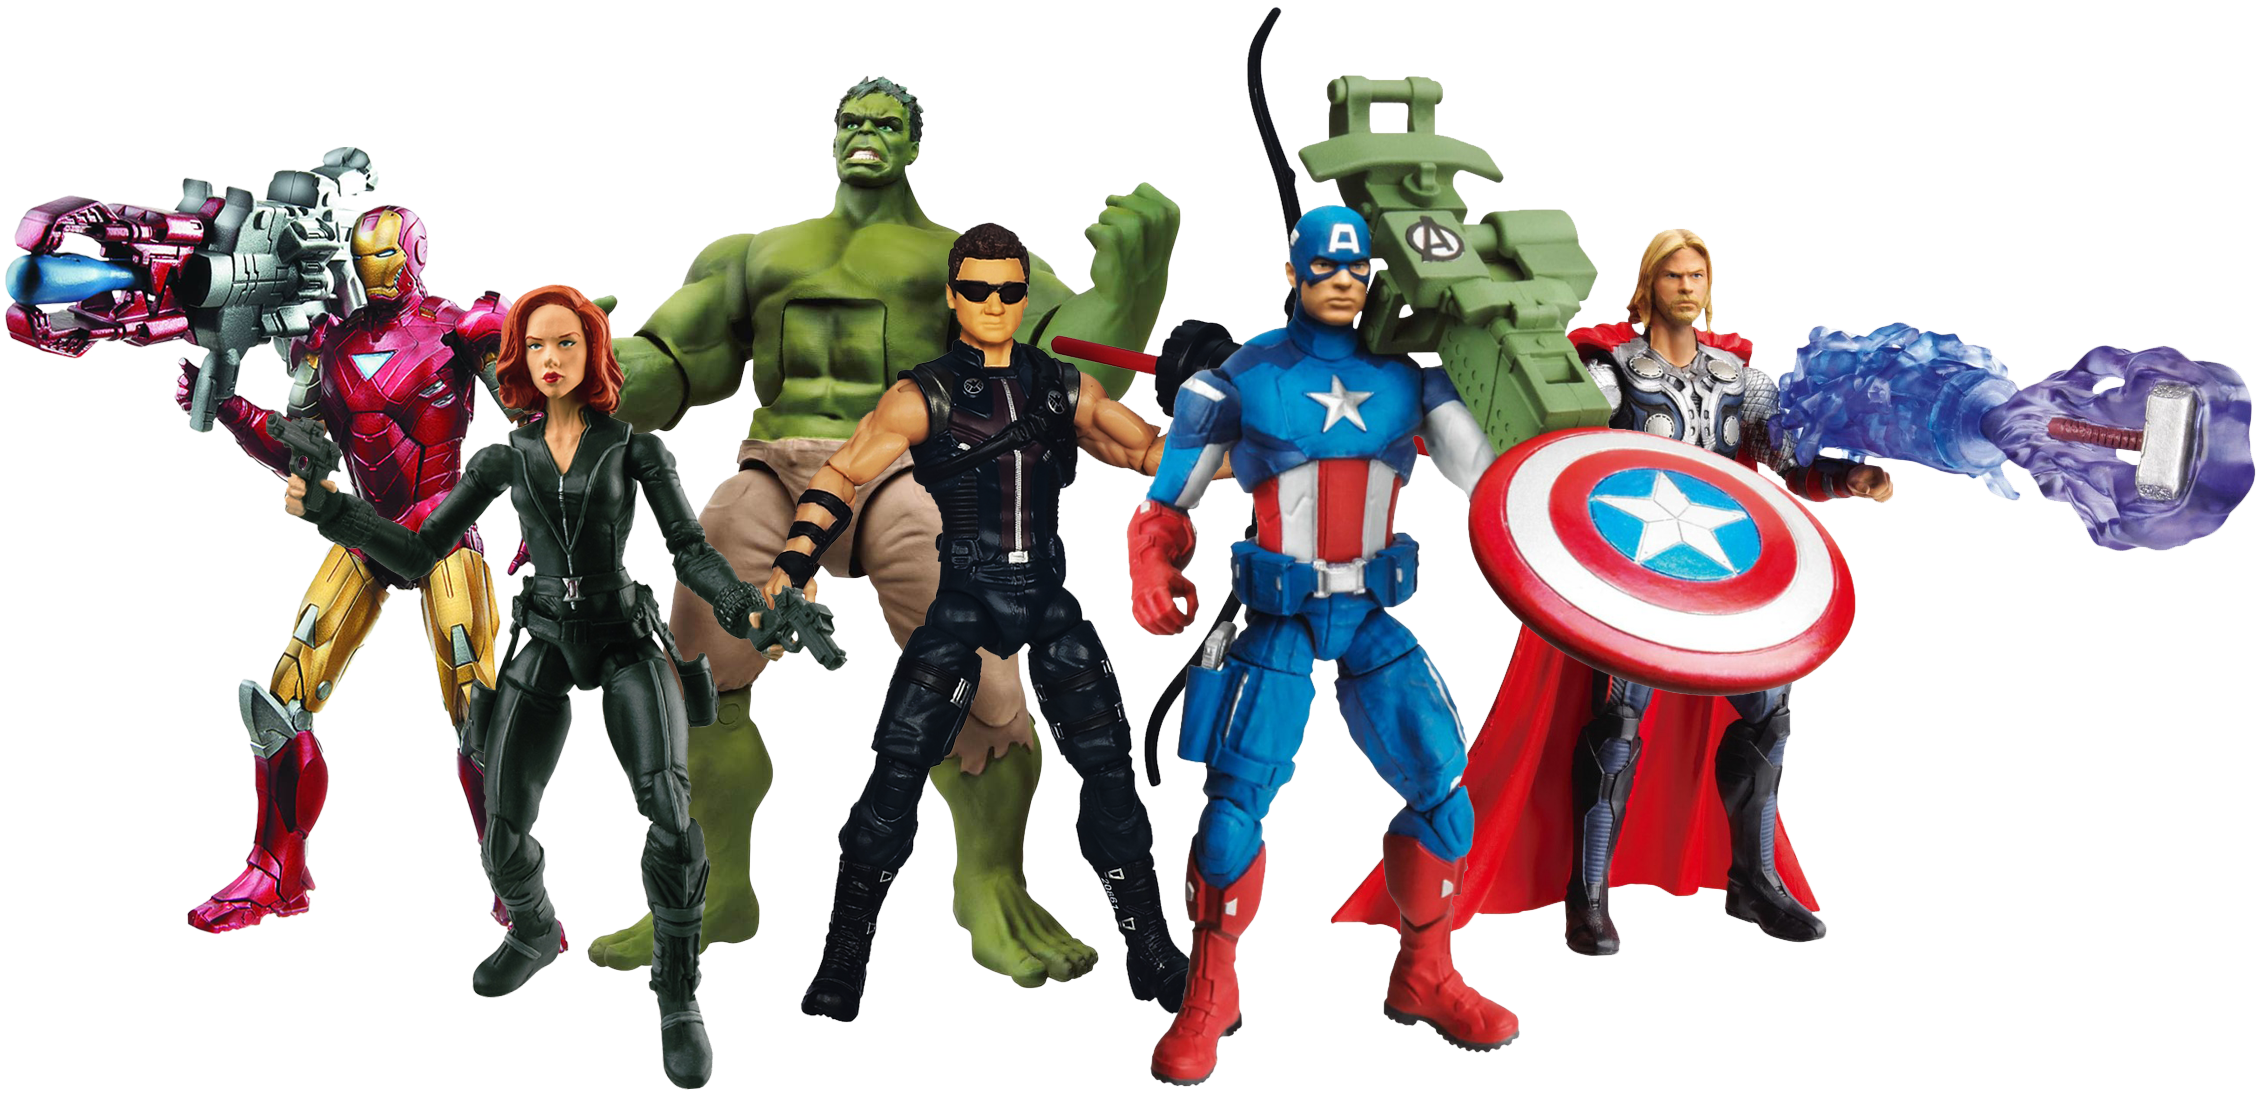 Hd Marvel Png - Clipart hd marvel - Clip Art Library